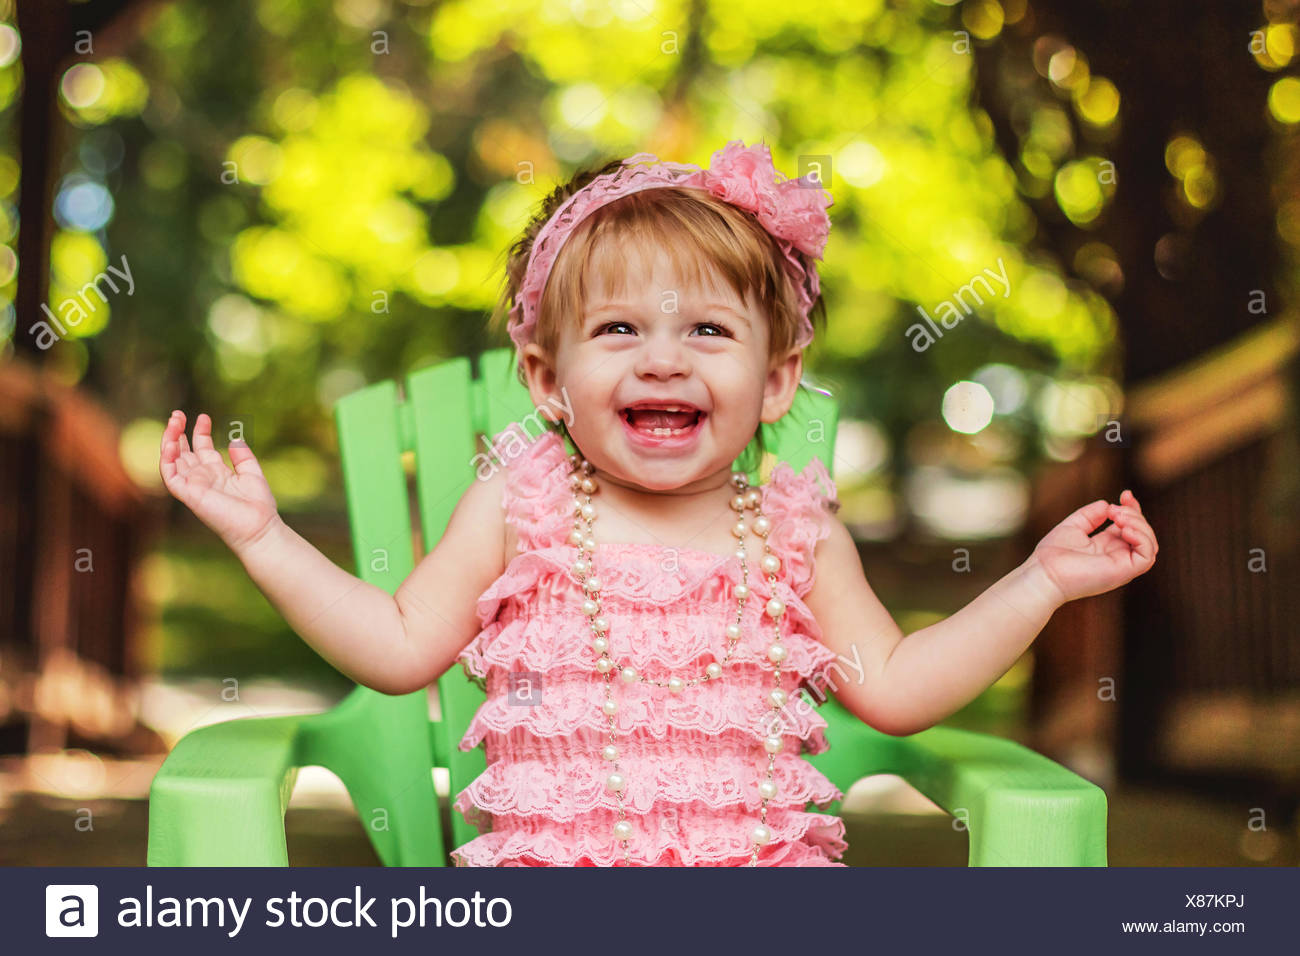 Happy girl in a party dress sitting in garden chair laughing Photo Stock